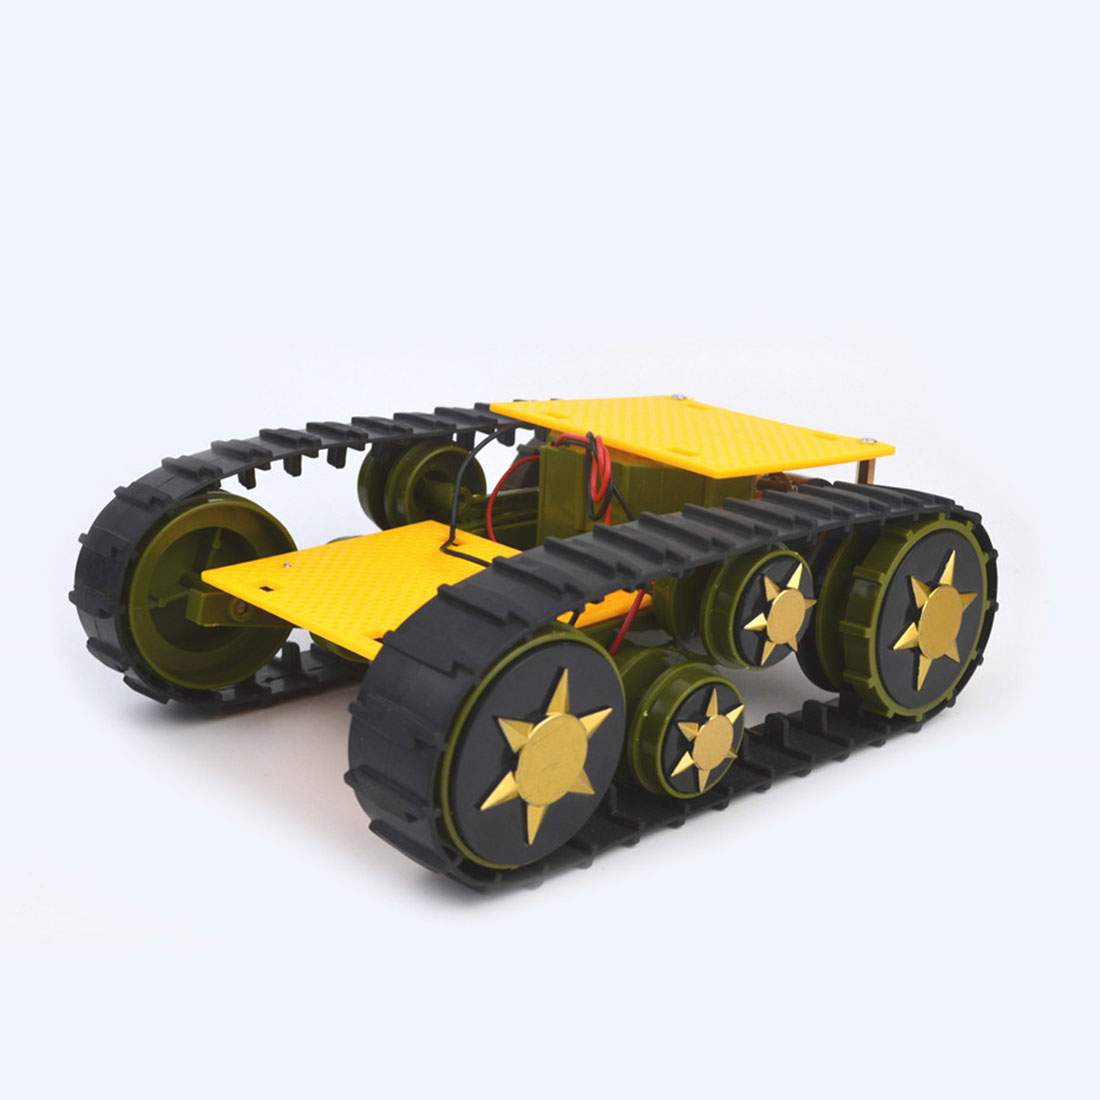 1pcs DIY Deformation Smart Tank Robot Crawler Caterpillar Vehicle Platform For Arduino SN1900 Kids Birthdaty Gifts Drop Shipping